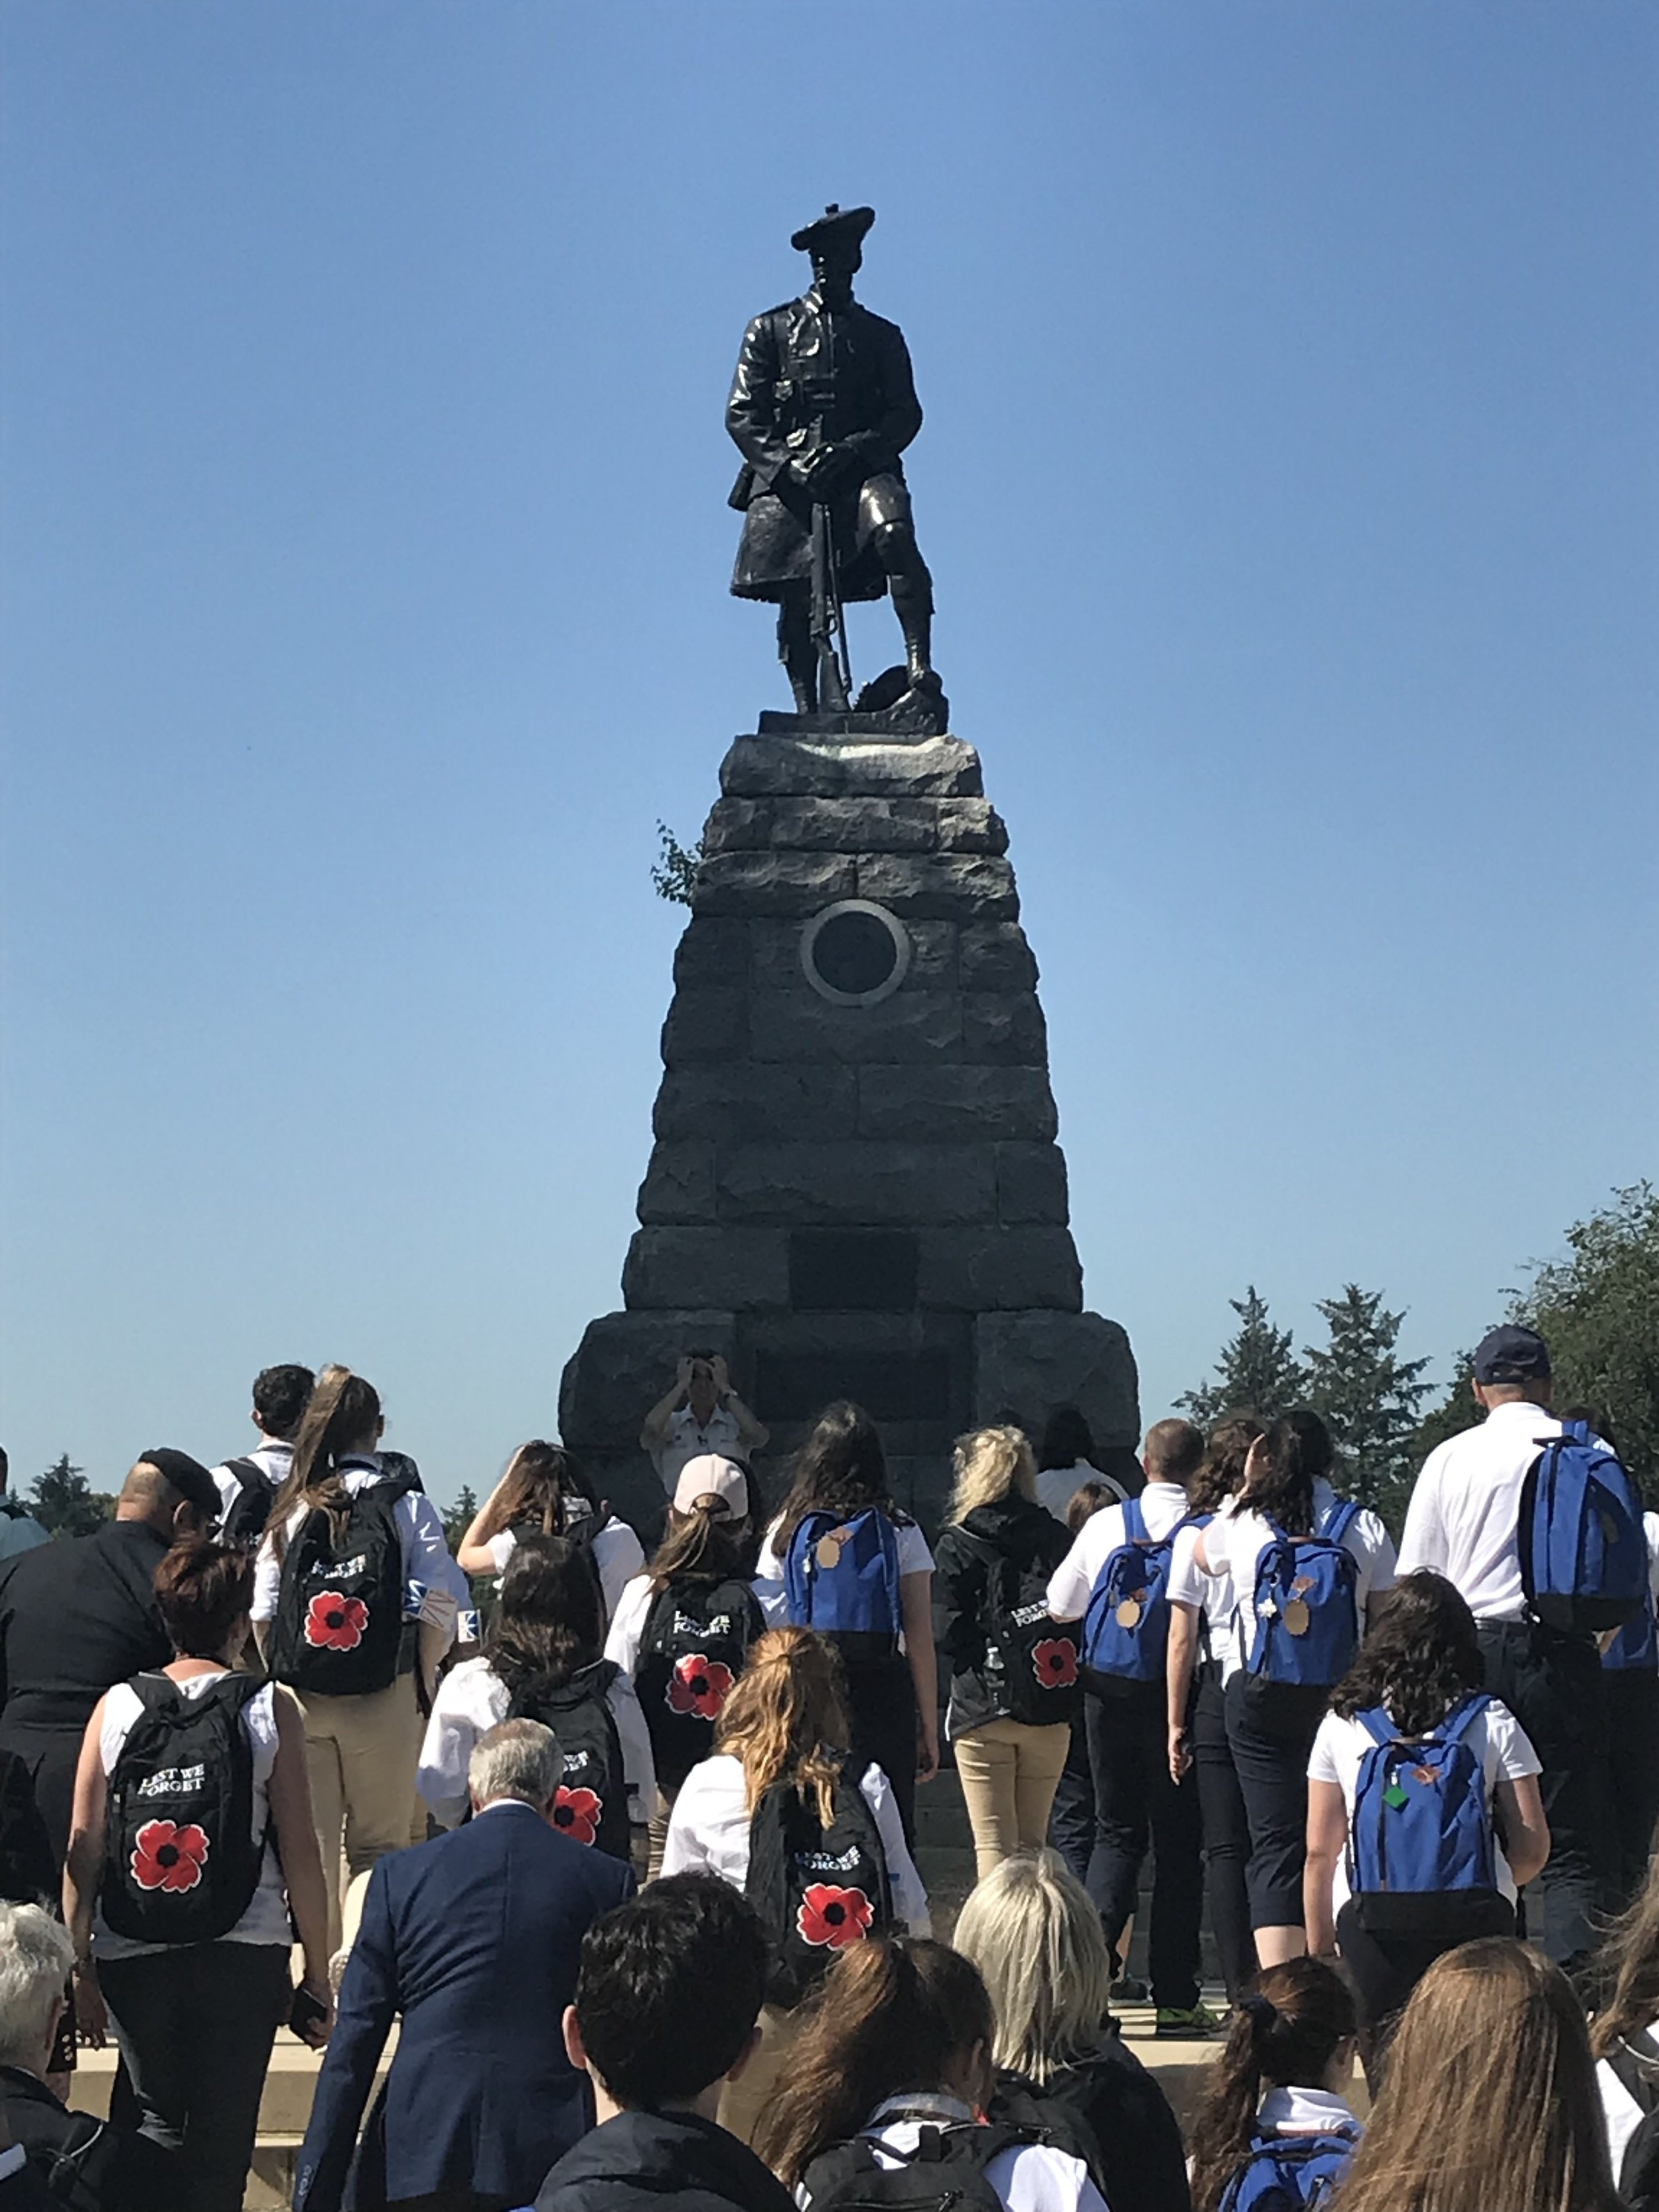 A montument in Beaumont-Hamel honuoring the 51st Highland Divison